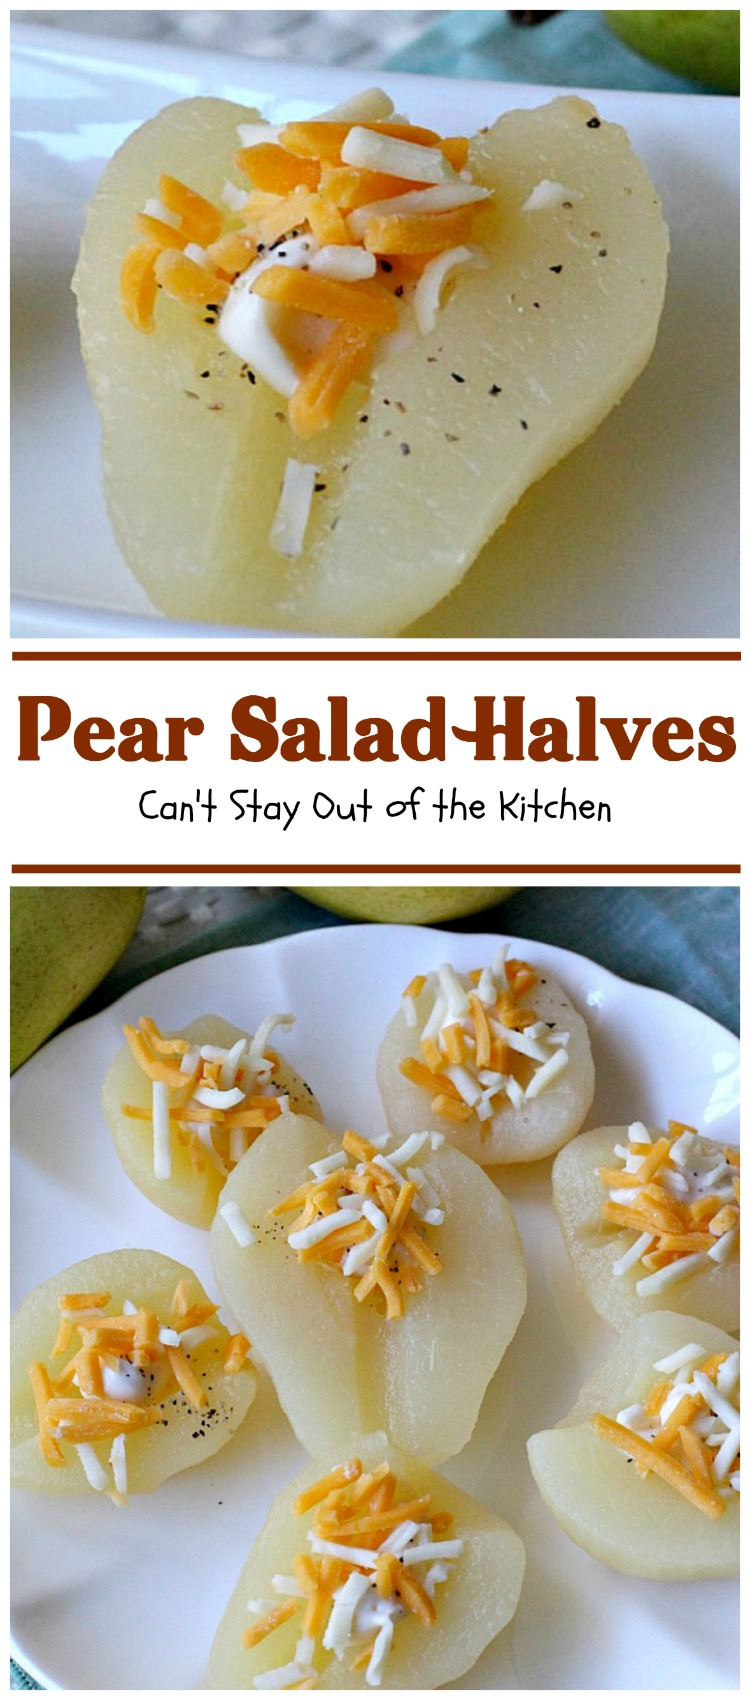 Pear Salad Halves | Can't Stay Out of the Kitchen | this is such a quick and easy way to serve #pears. Only 4-ingredients needed for this lovely #fruit #salad.